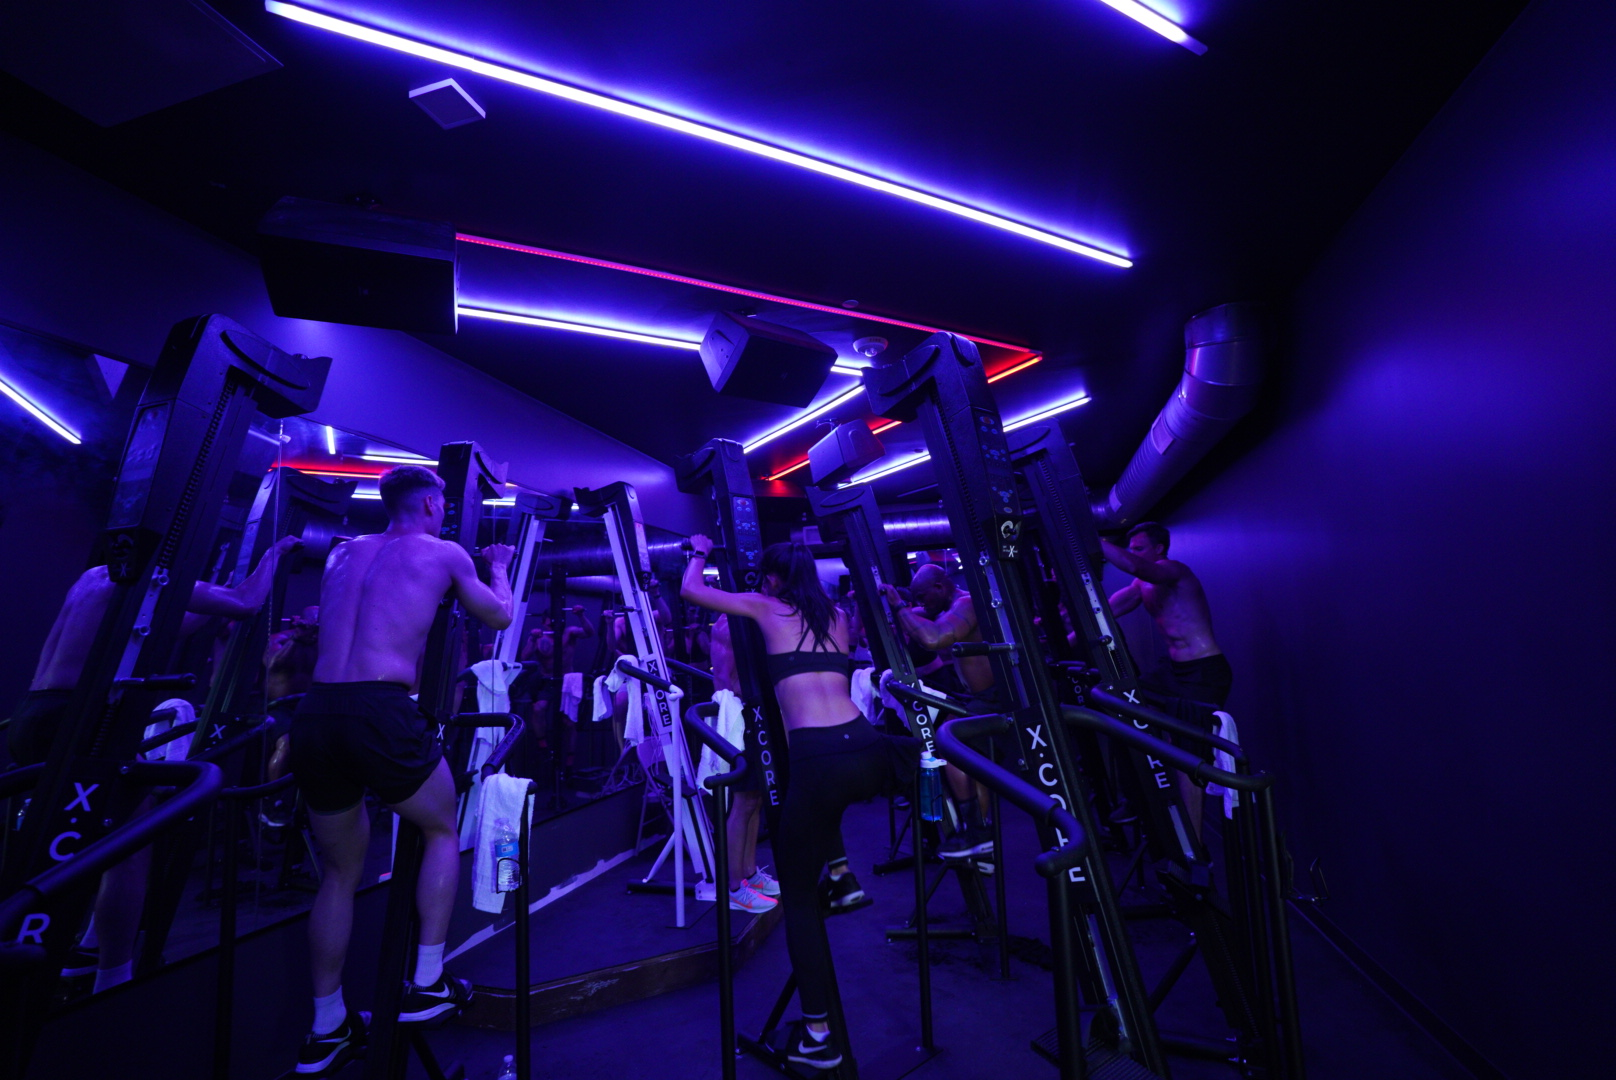 CARDIO - 30 minutes in our beat-based X-CLIMB class will make you sweat and leave you shredded.LEARN MORE